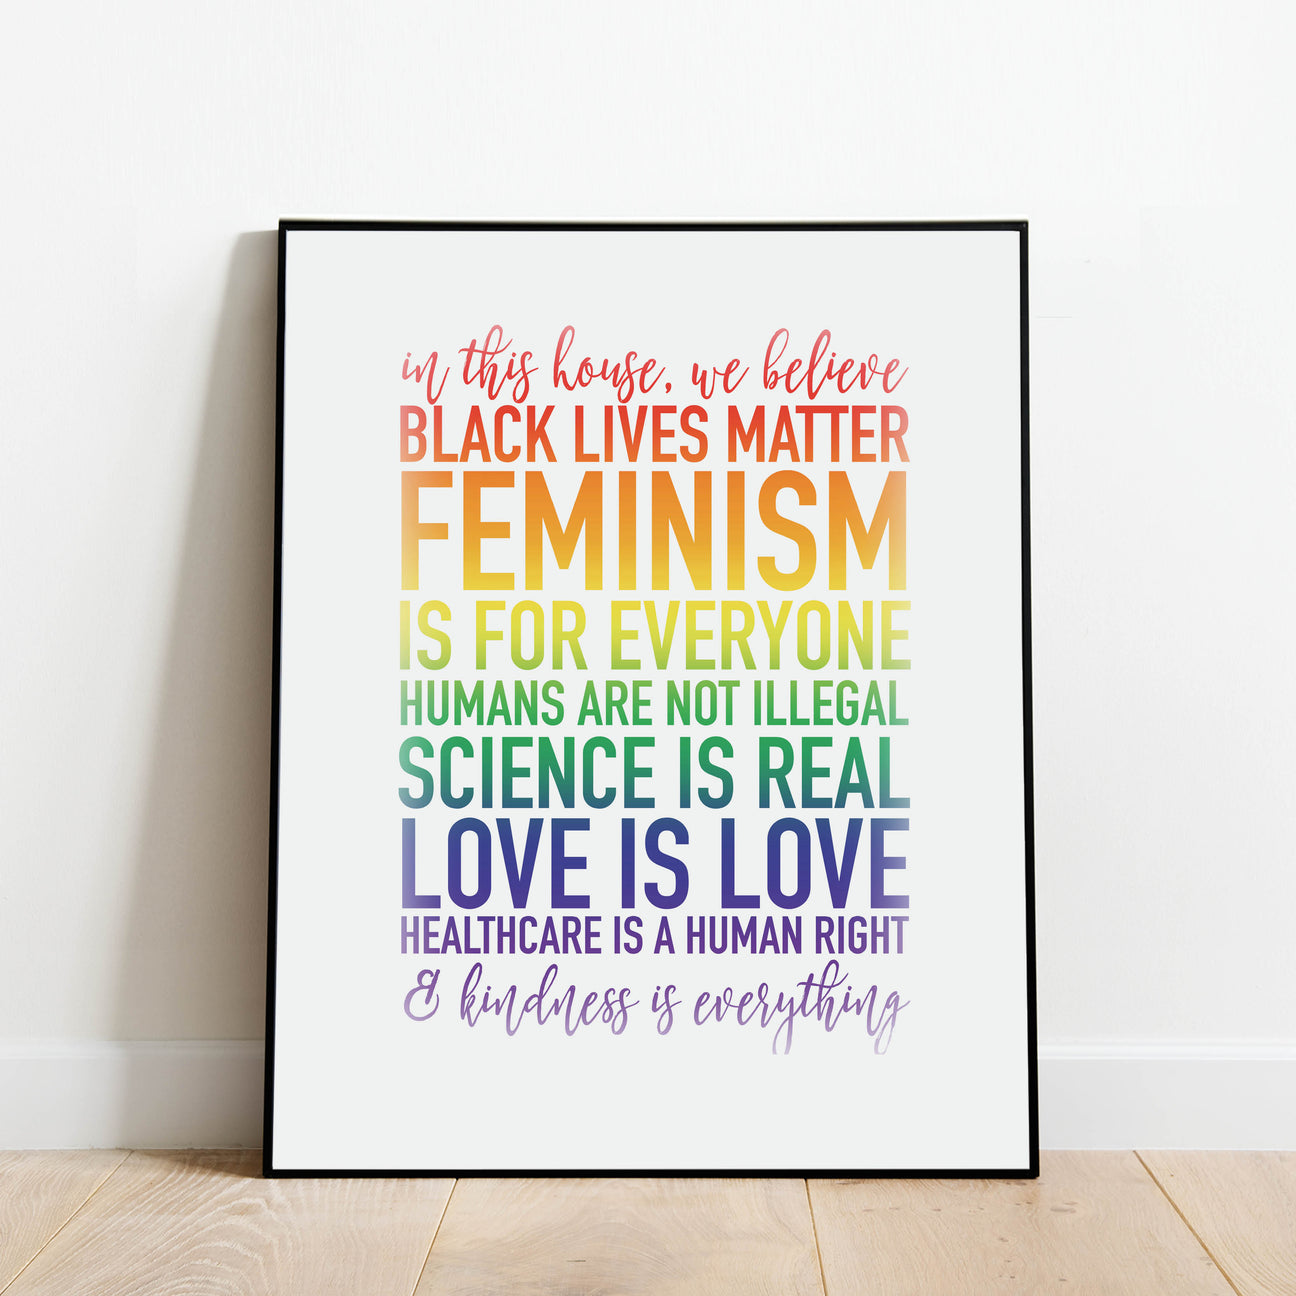 Rainbow In this house, we believe poster / Black lives matter, feminism is for everyone, love is love